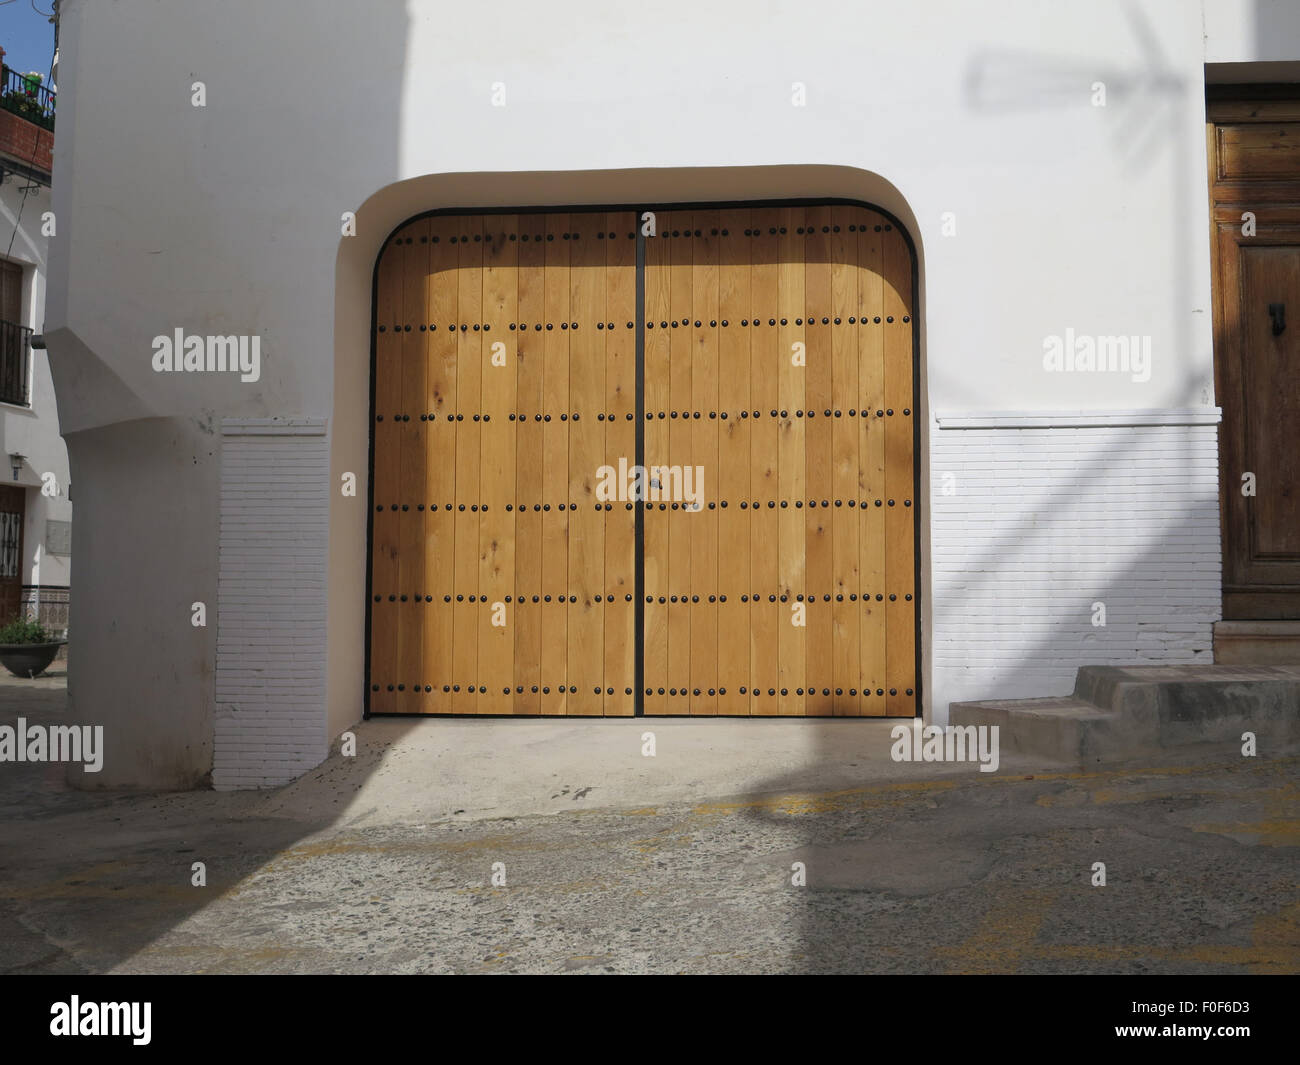 Traditional Andalusian wooden doors with big iron studs - Stock Image & Door With Studs Stock Photos \u0026 Door With Studs Stock Images - Alamy